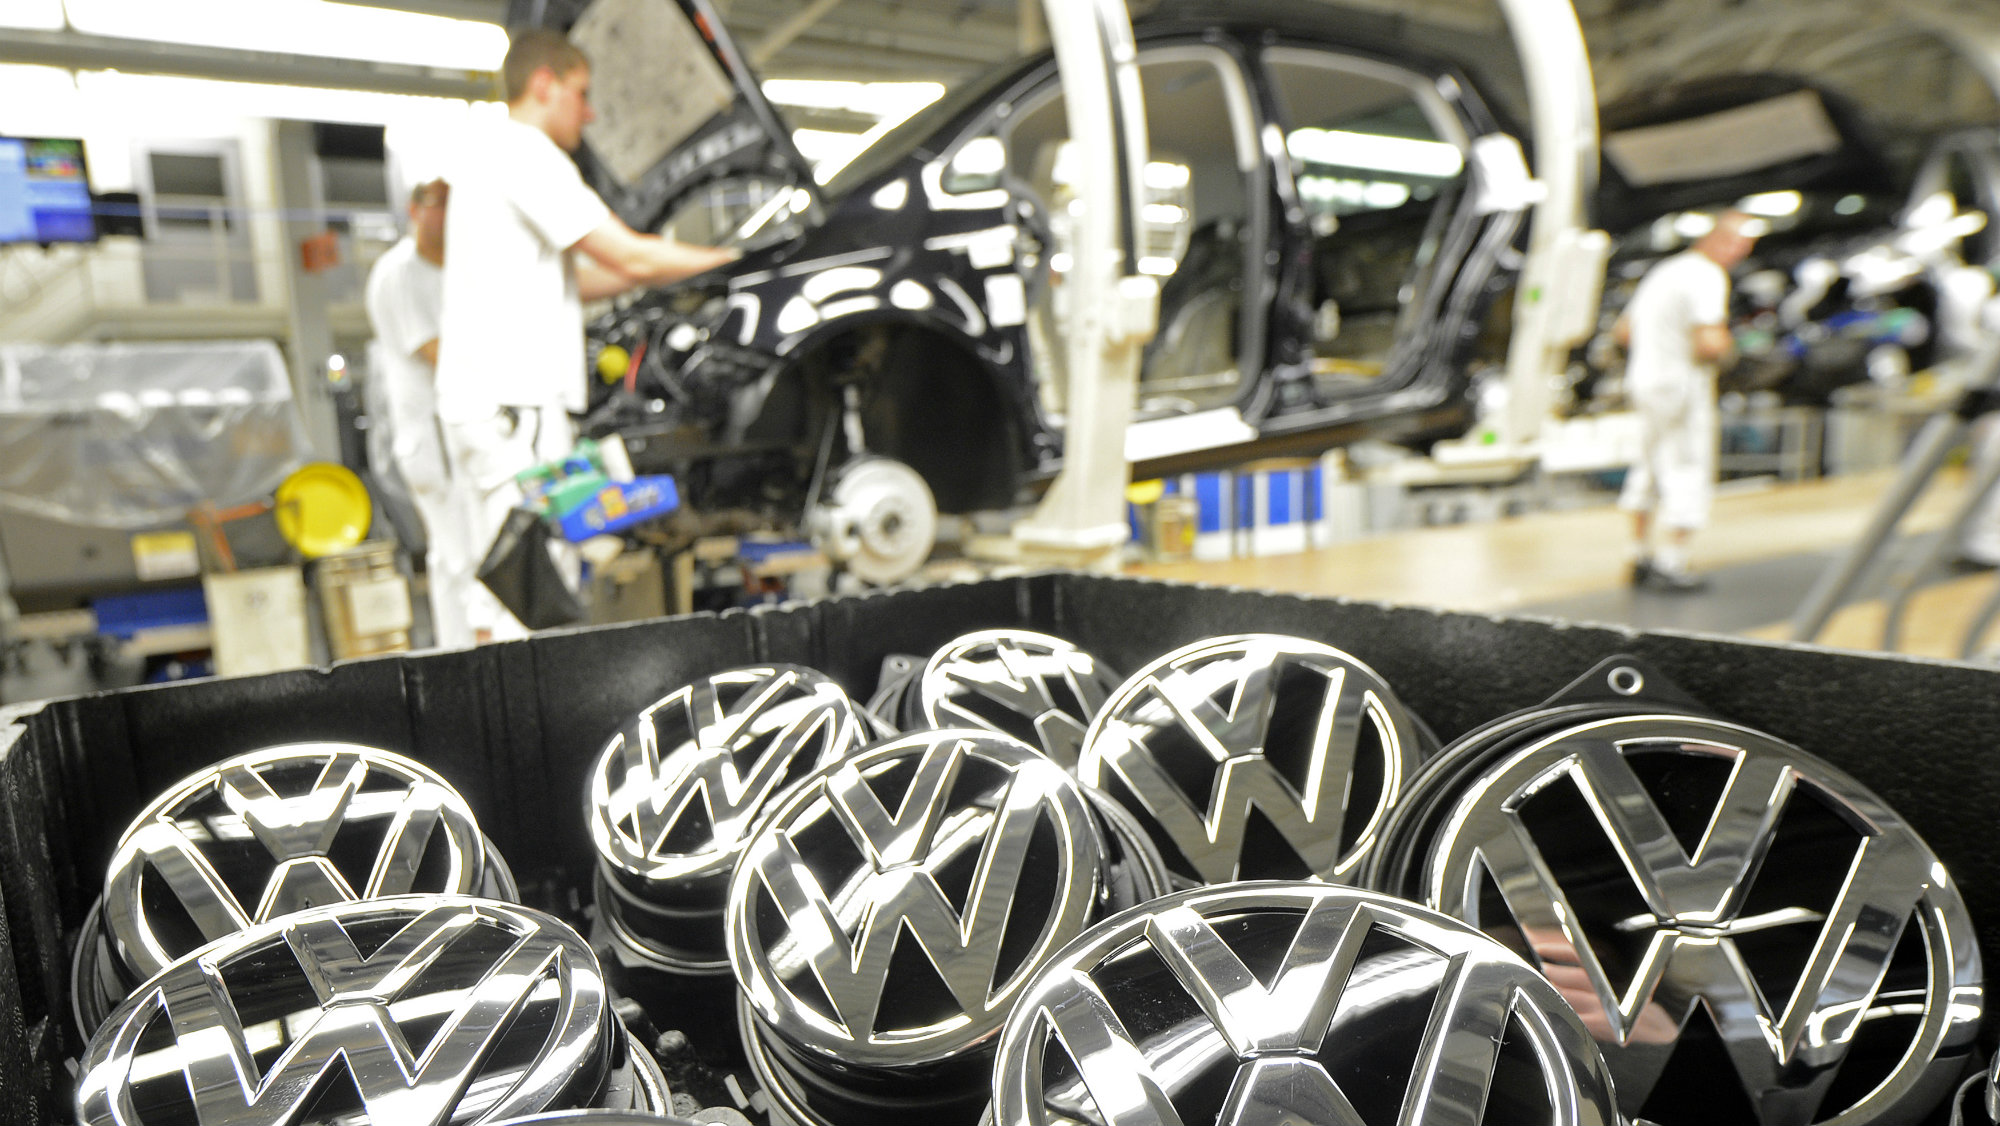 Emblems of VW Golf VII car are pictured in a production line at the plant of German carmaker Volkswagen in Wolfsburg.